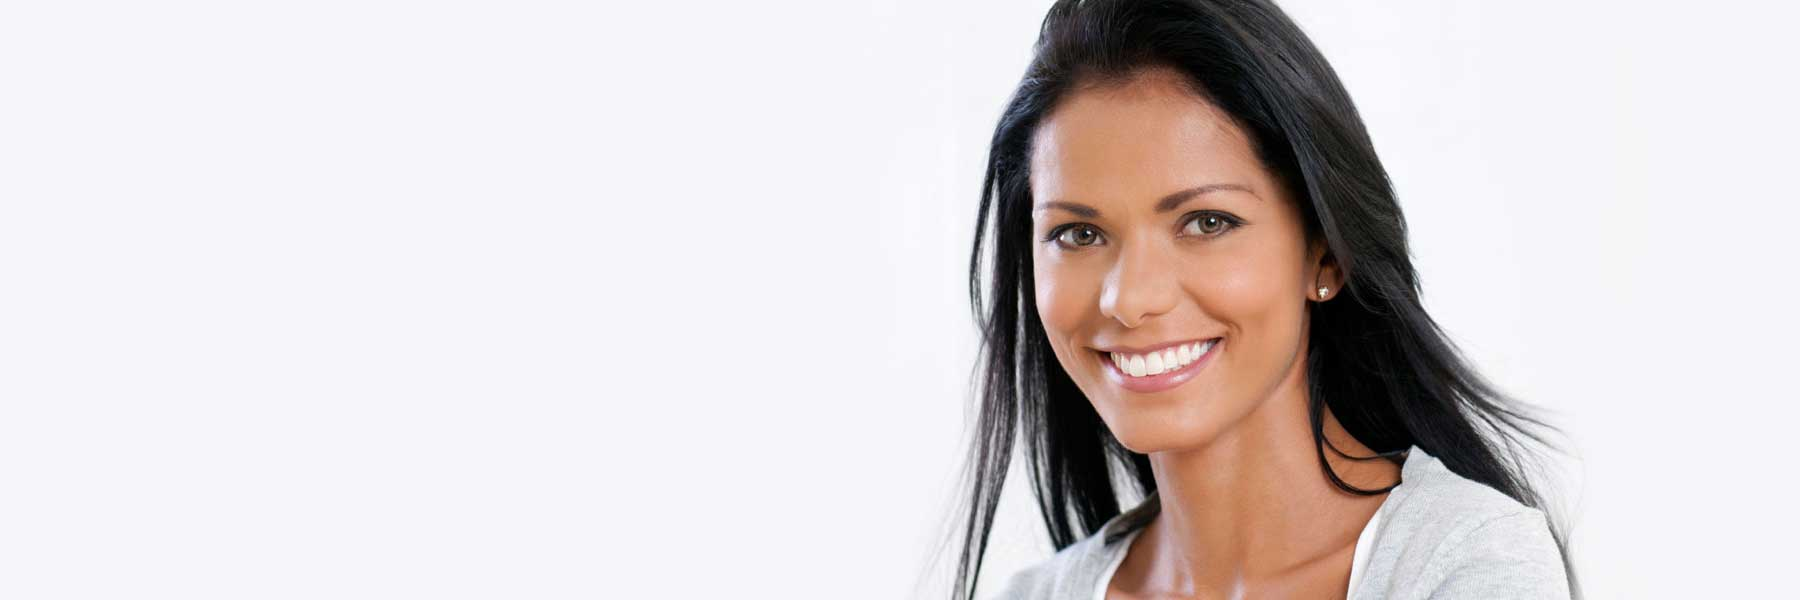 Invisalign Clear Braces in Jensen Beach and Stuart, FL banner image